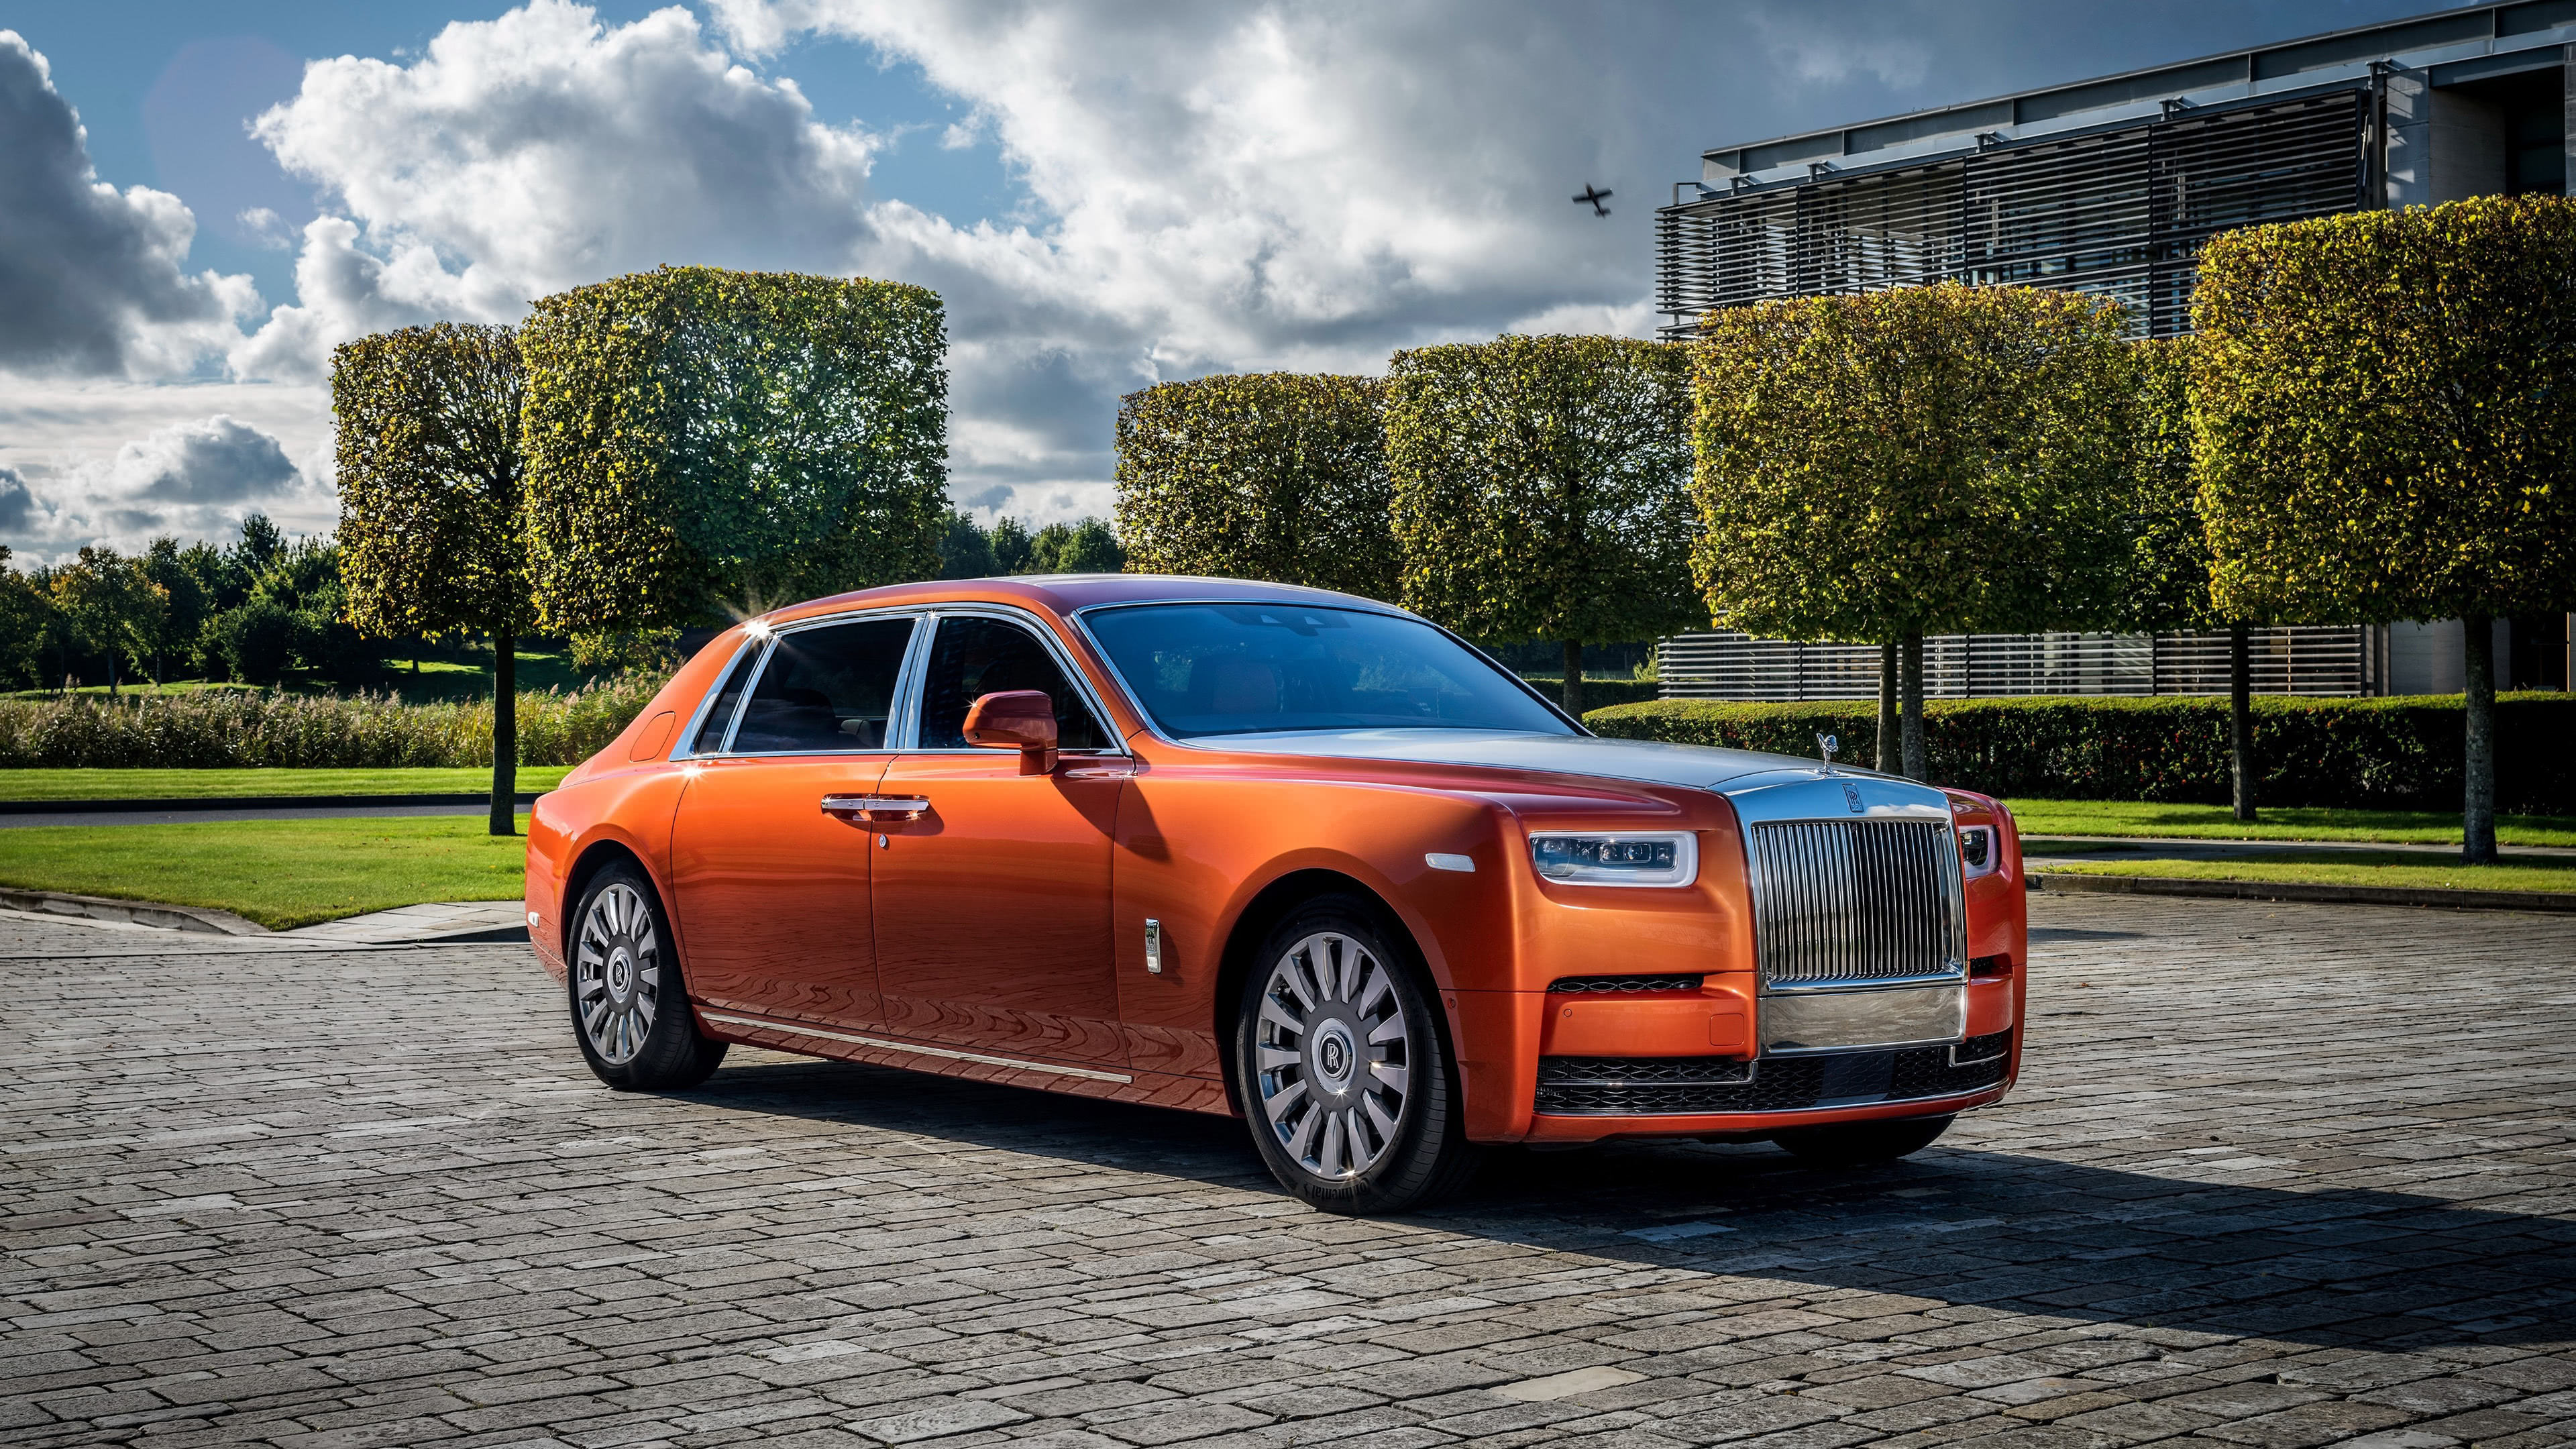 Rolls Royce Phantom EWB Orange UHD 4K Wallpaper